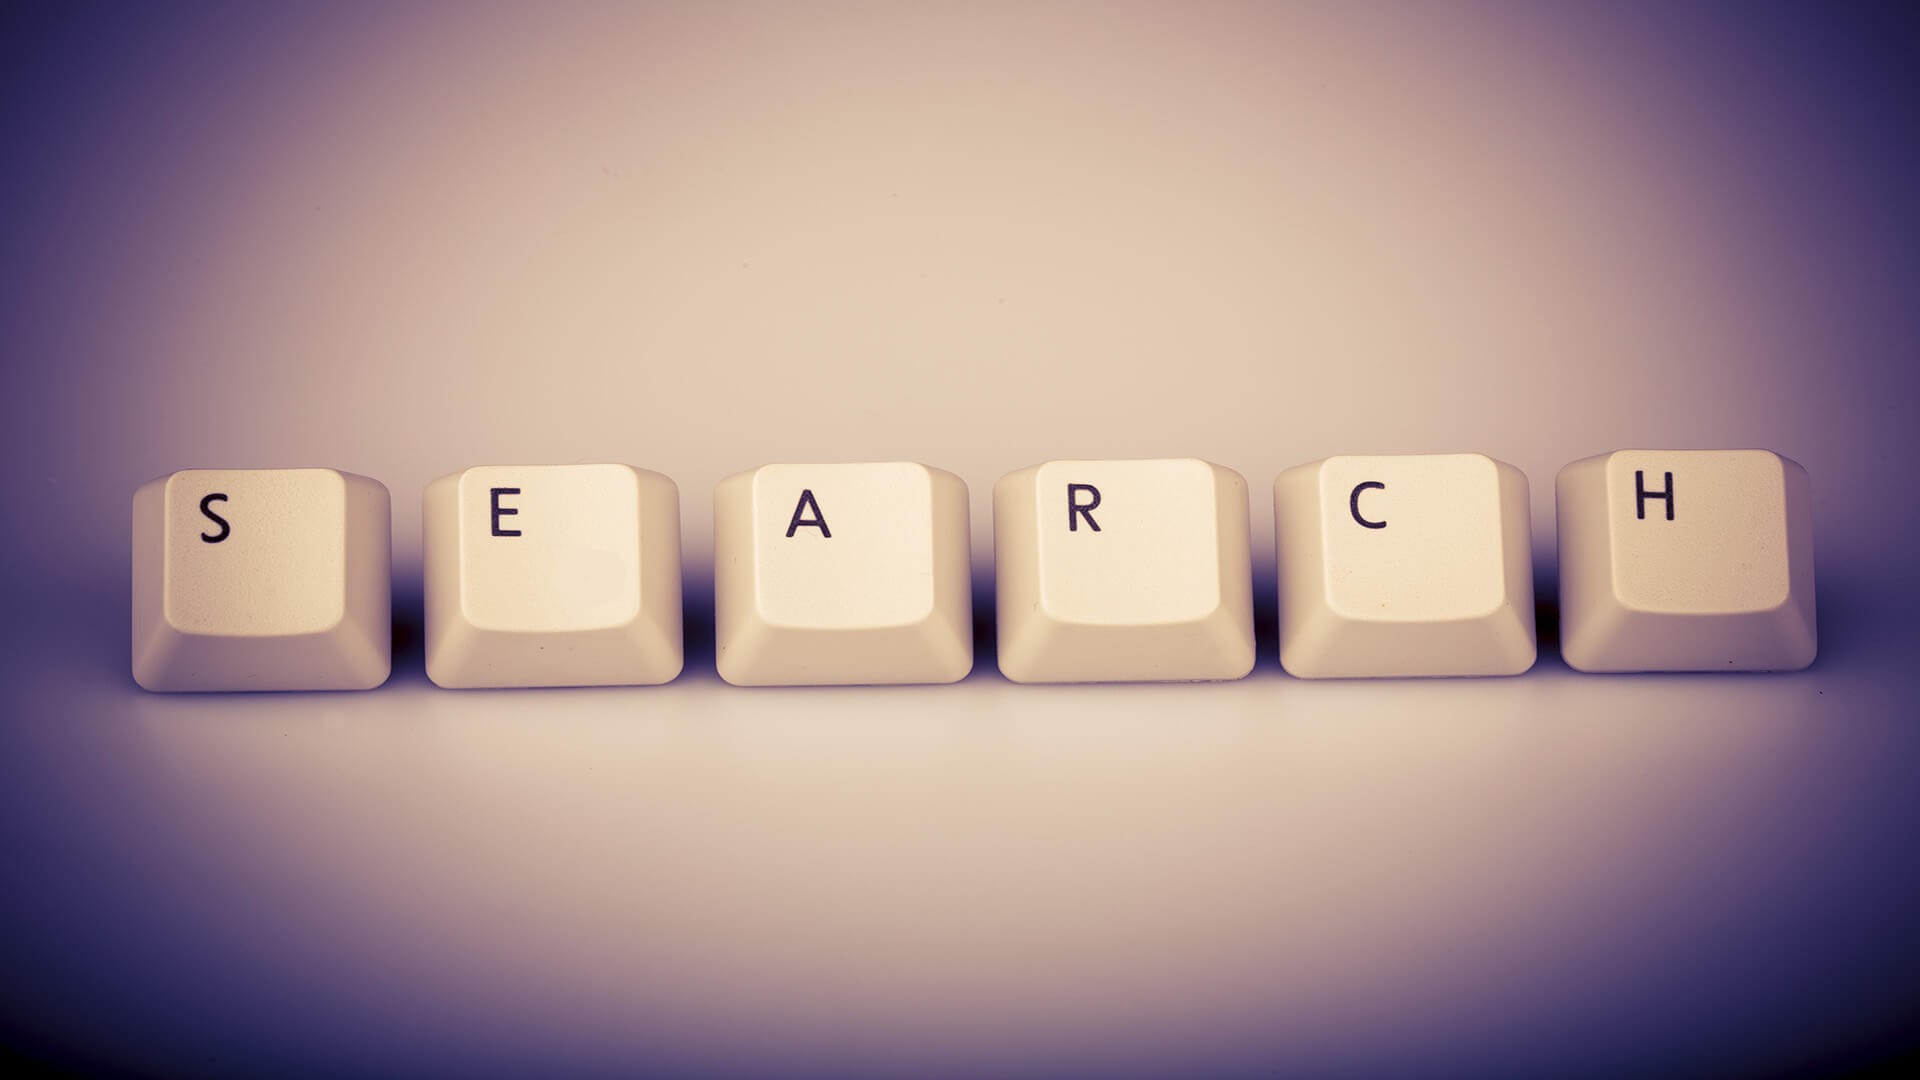 Evolution of Search Engines: How Will Search Engines Look in 10 Years?